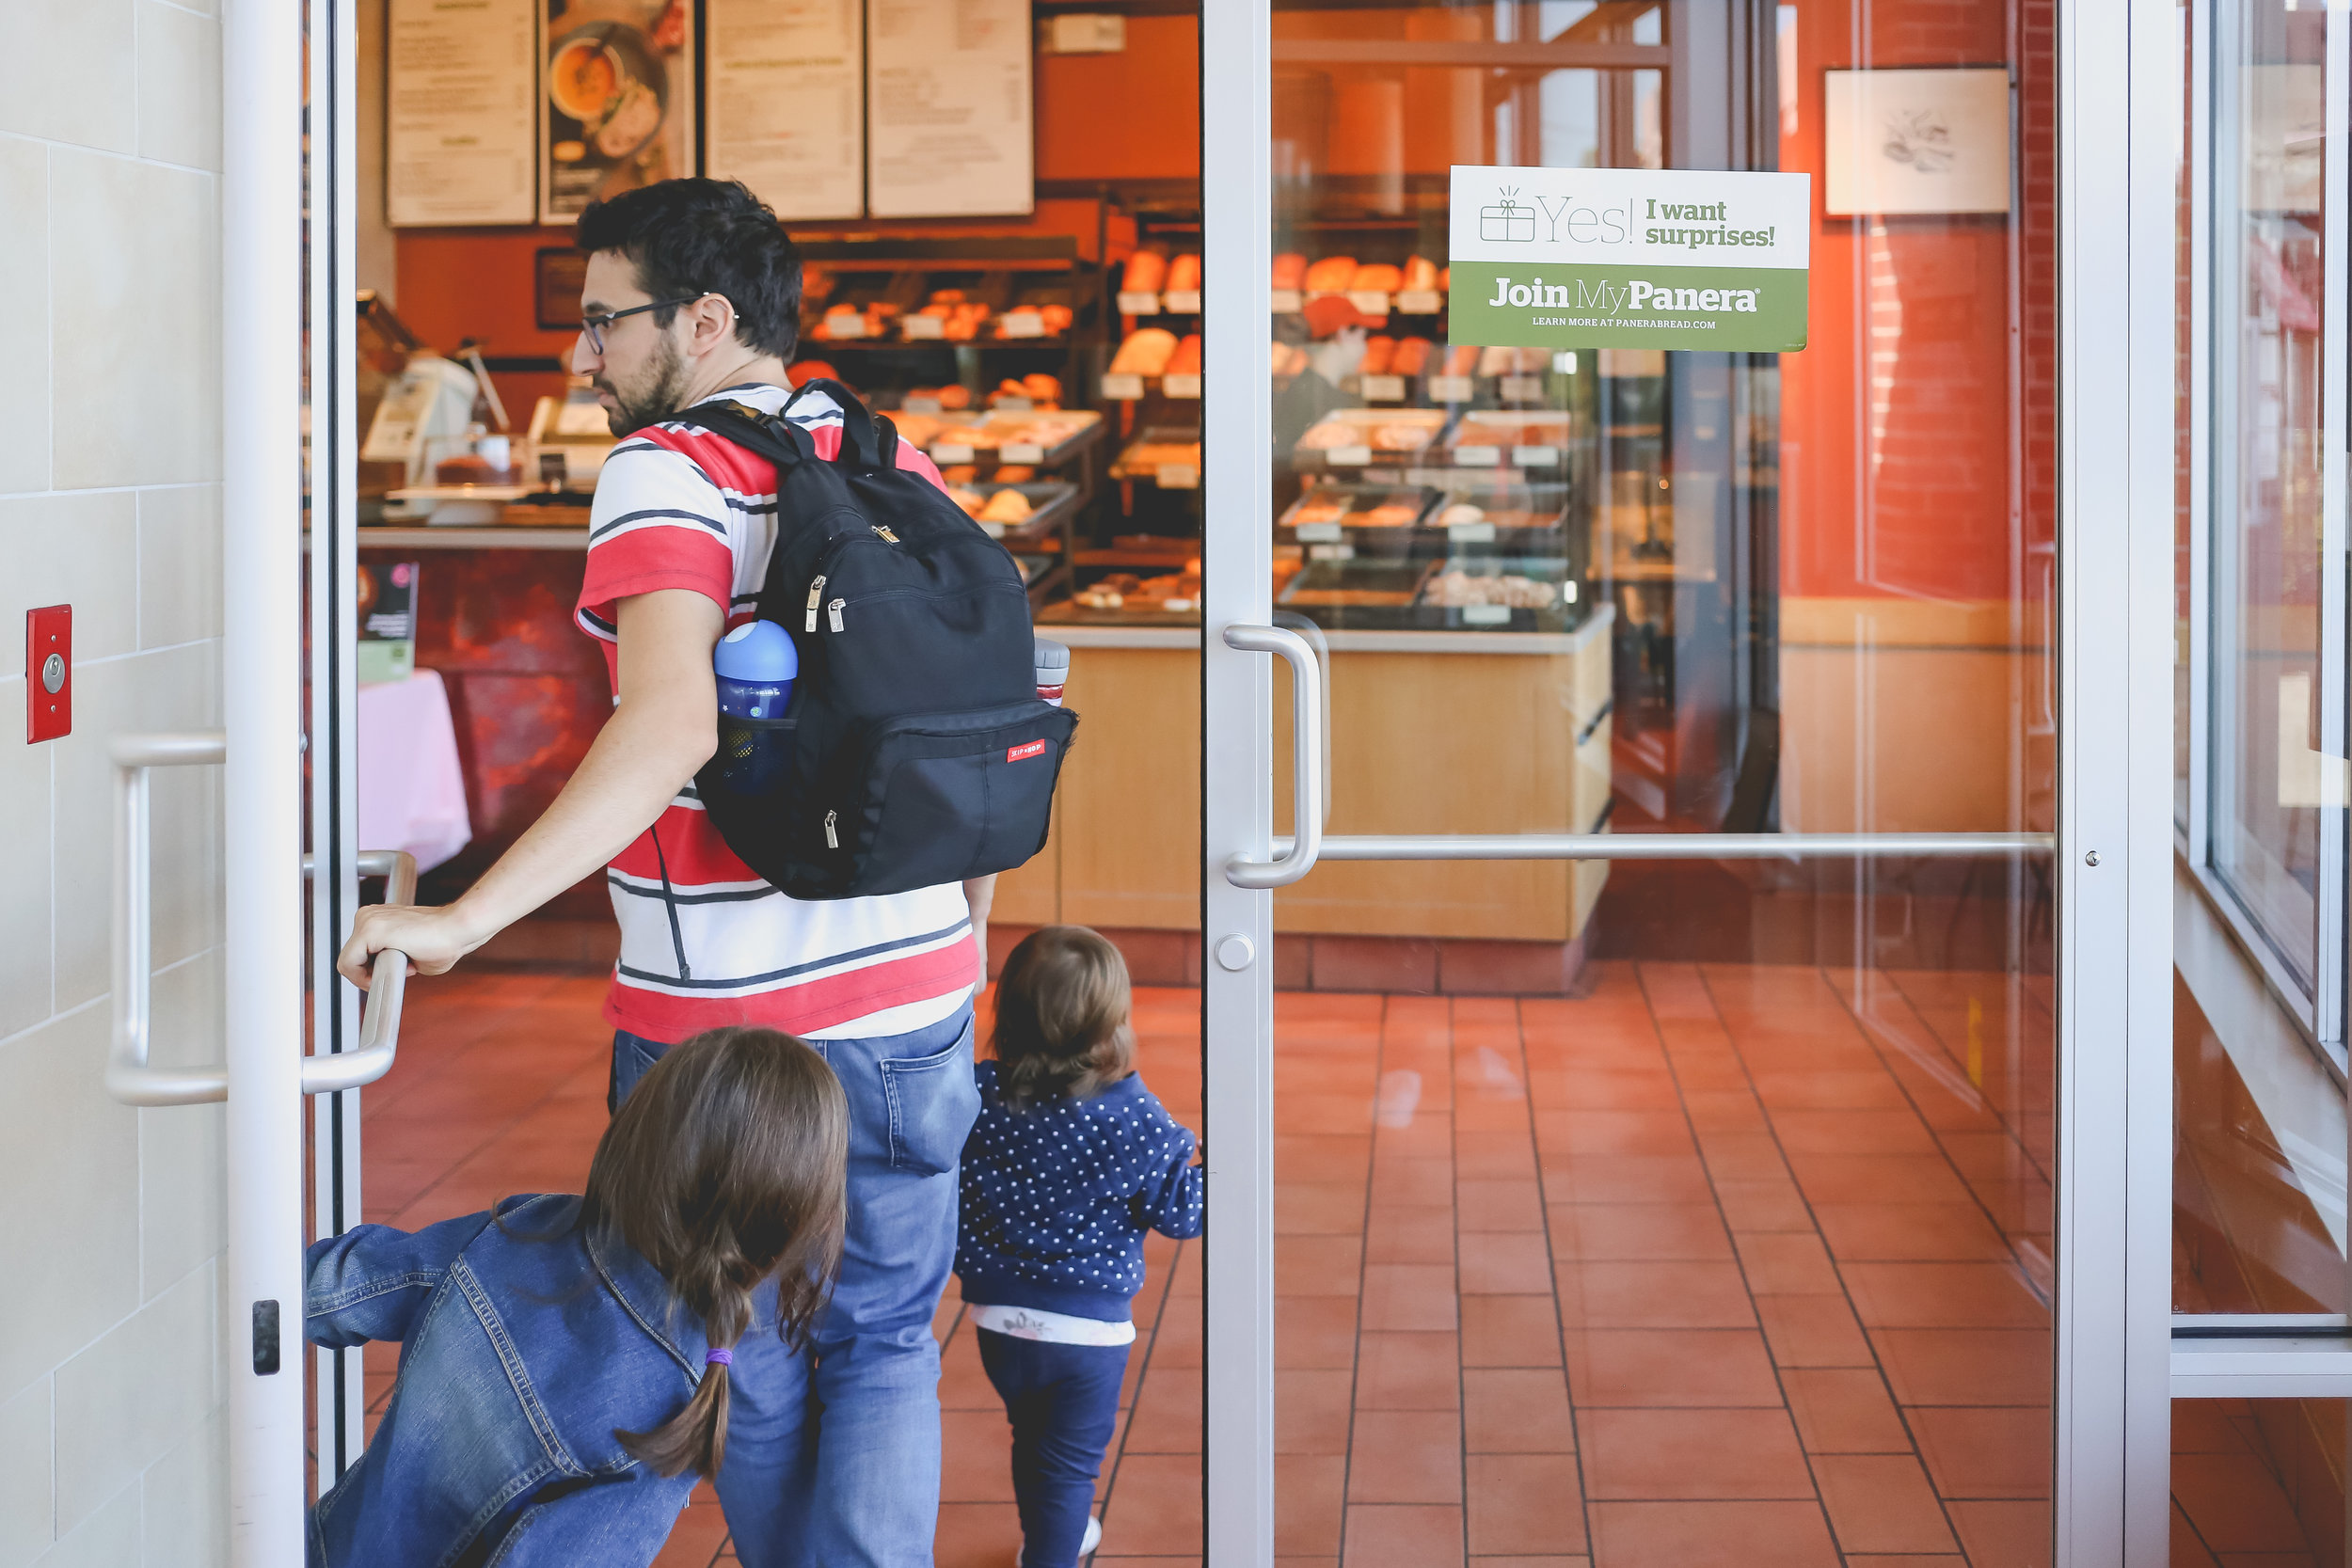 Walking into Panera Bread in Staten Island, NY. Day in the LIfe family photo session.